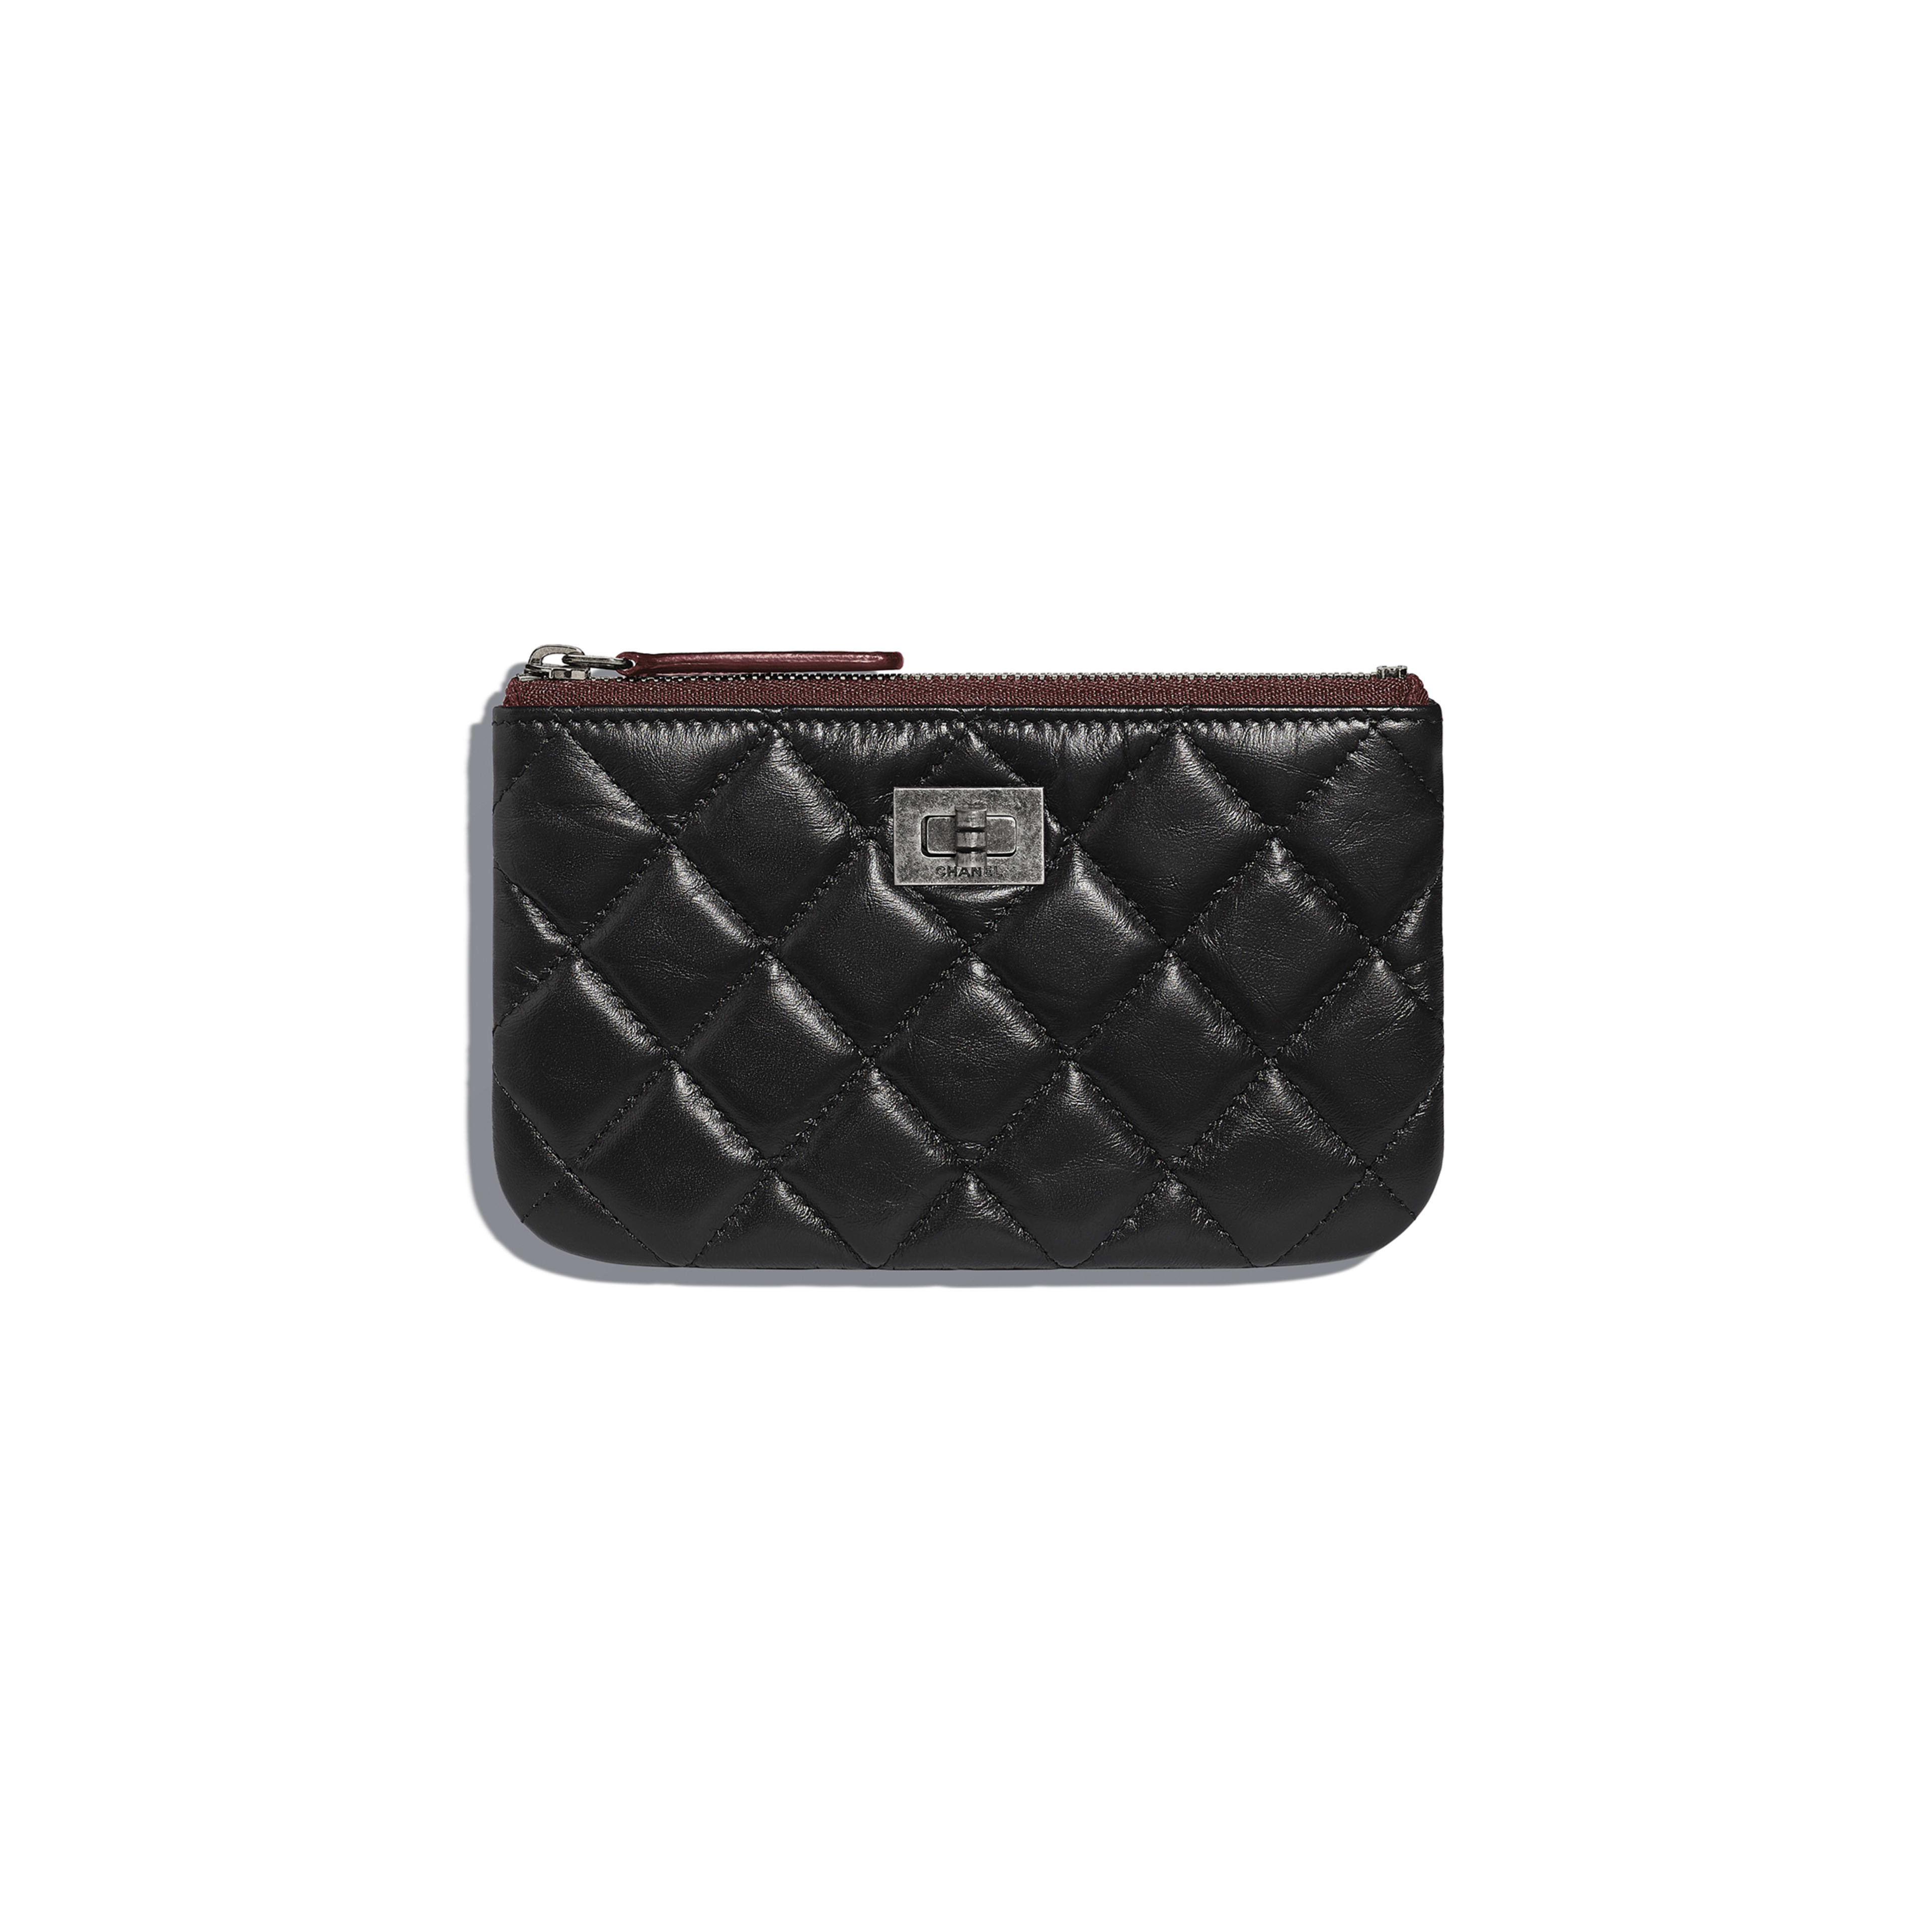 2.55 Mini Pouch - Black - Aged Calfskin & Ruthenium-Finish Metal - Default view - see full sized version